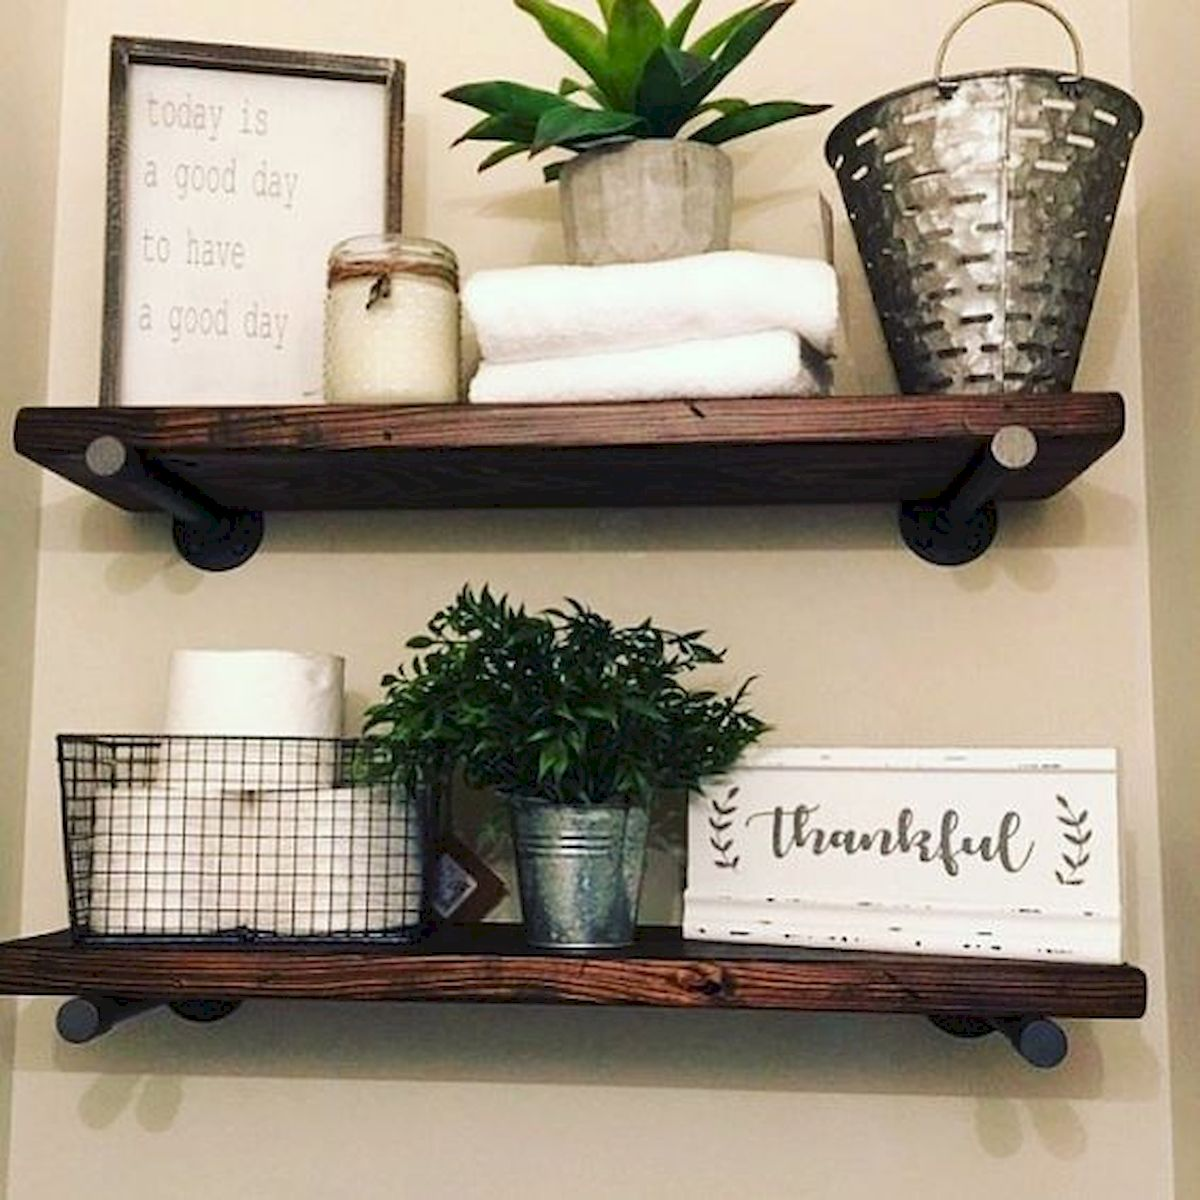 Best 33 DIY Wall Decor Built with Industrial Design (30)